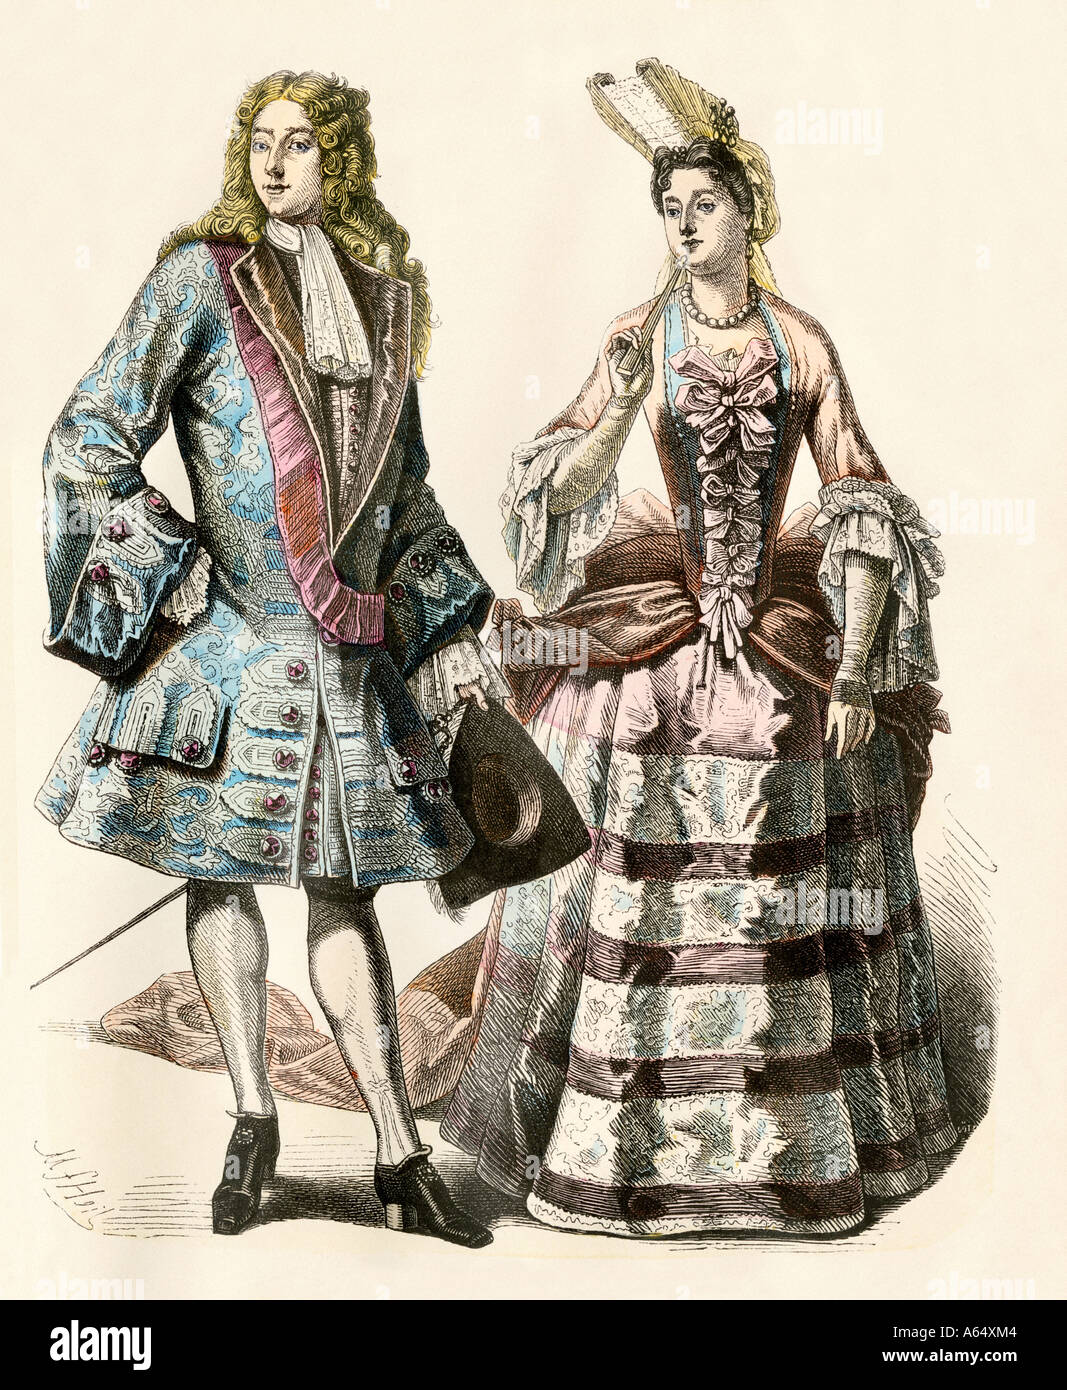 Gentleman and lady of Louis XIVs court France early 1700s. Hand-colored print Stock Photo